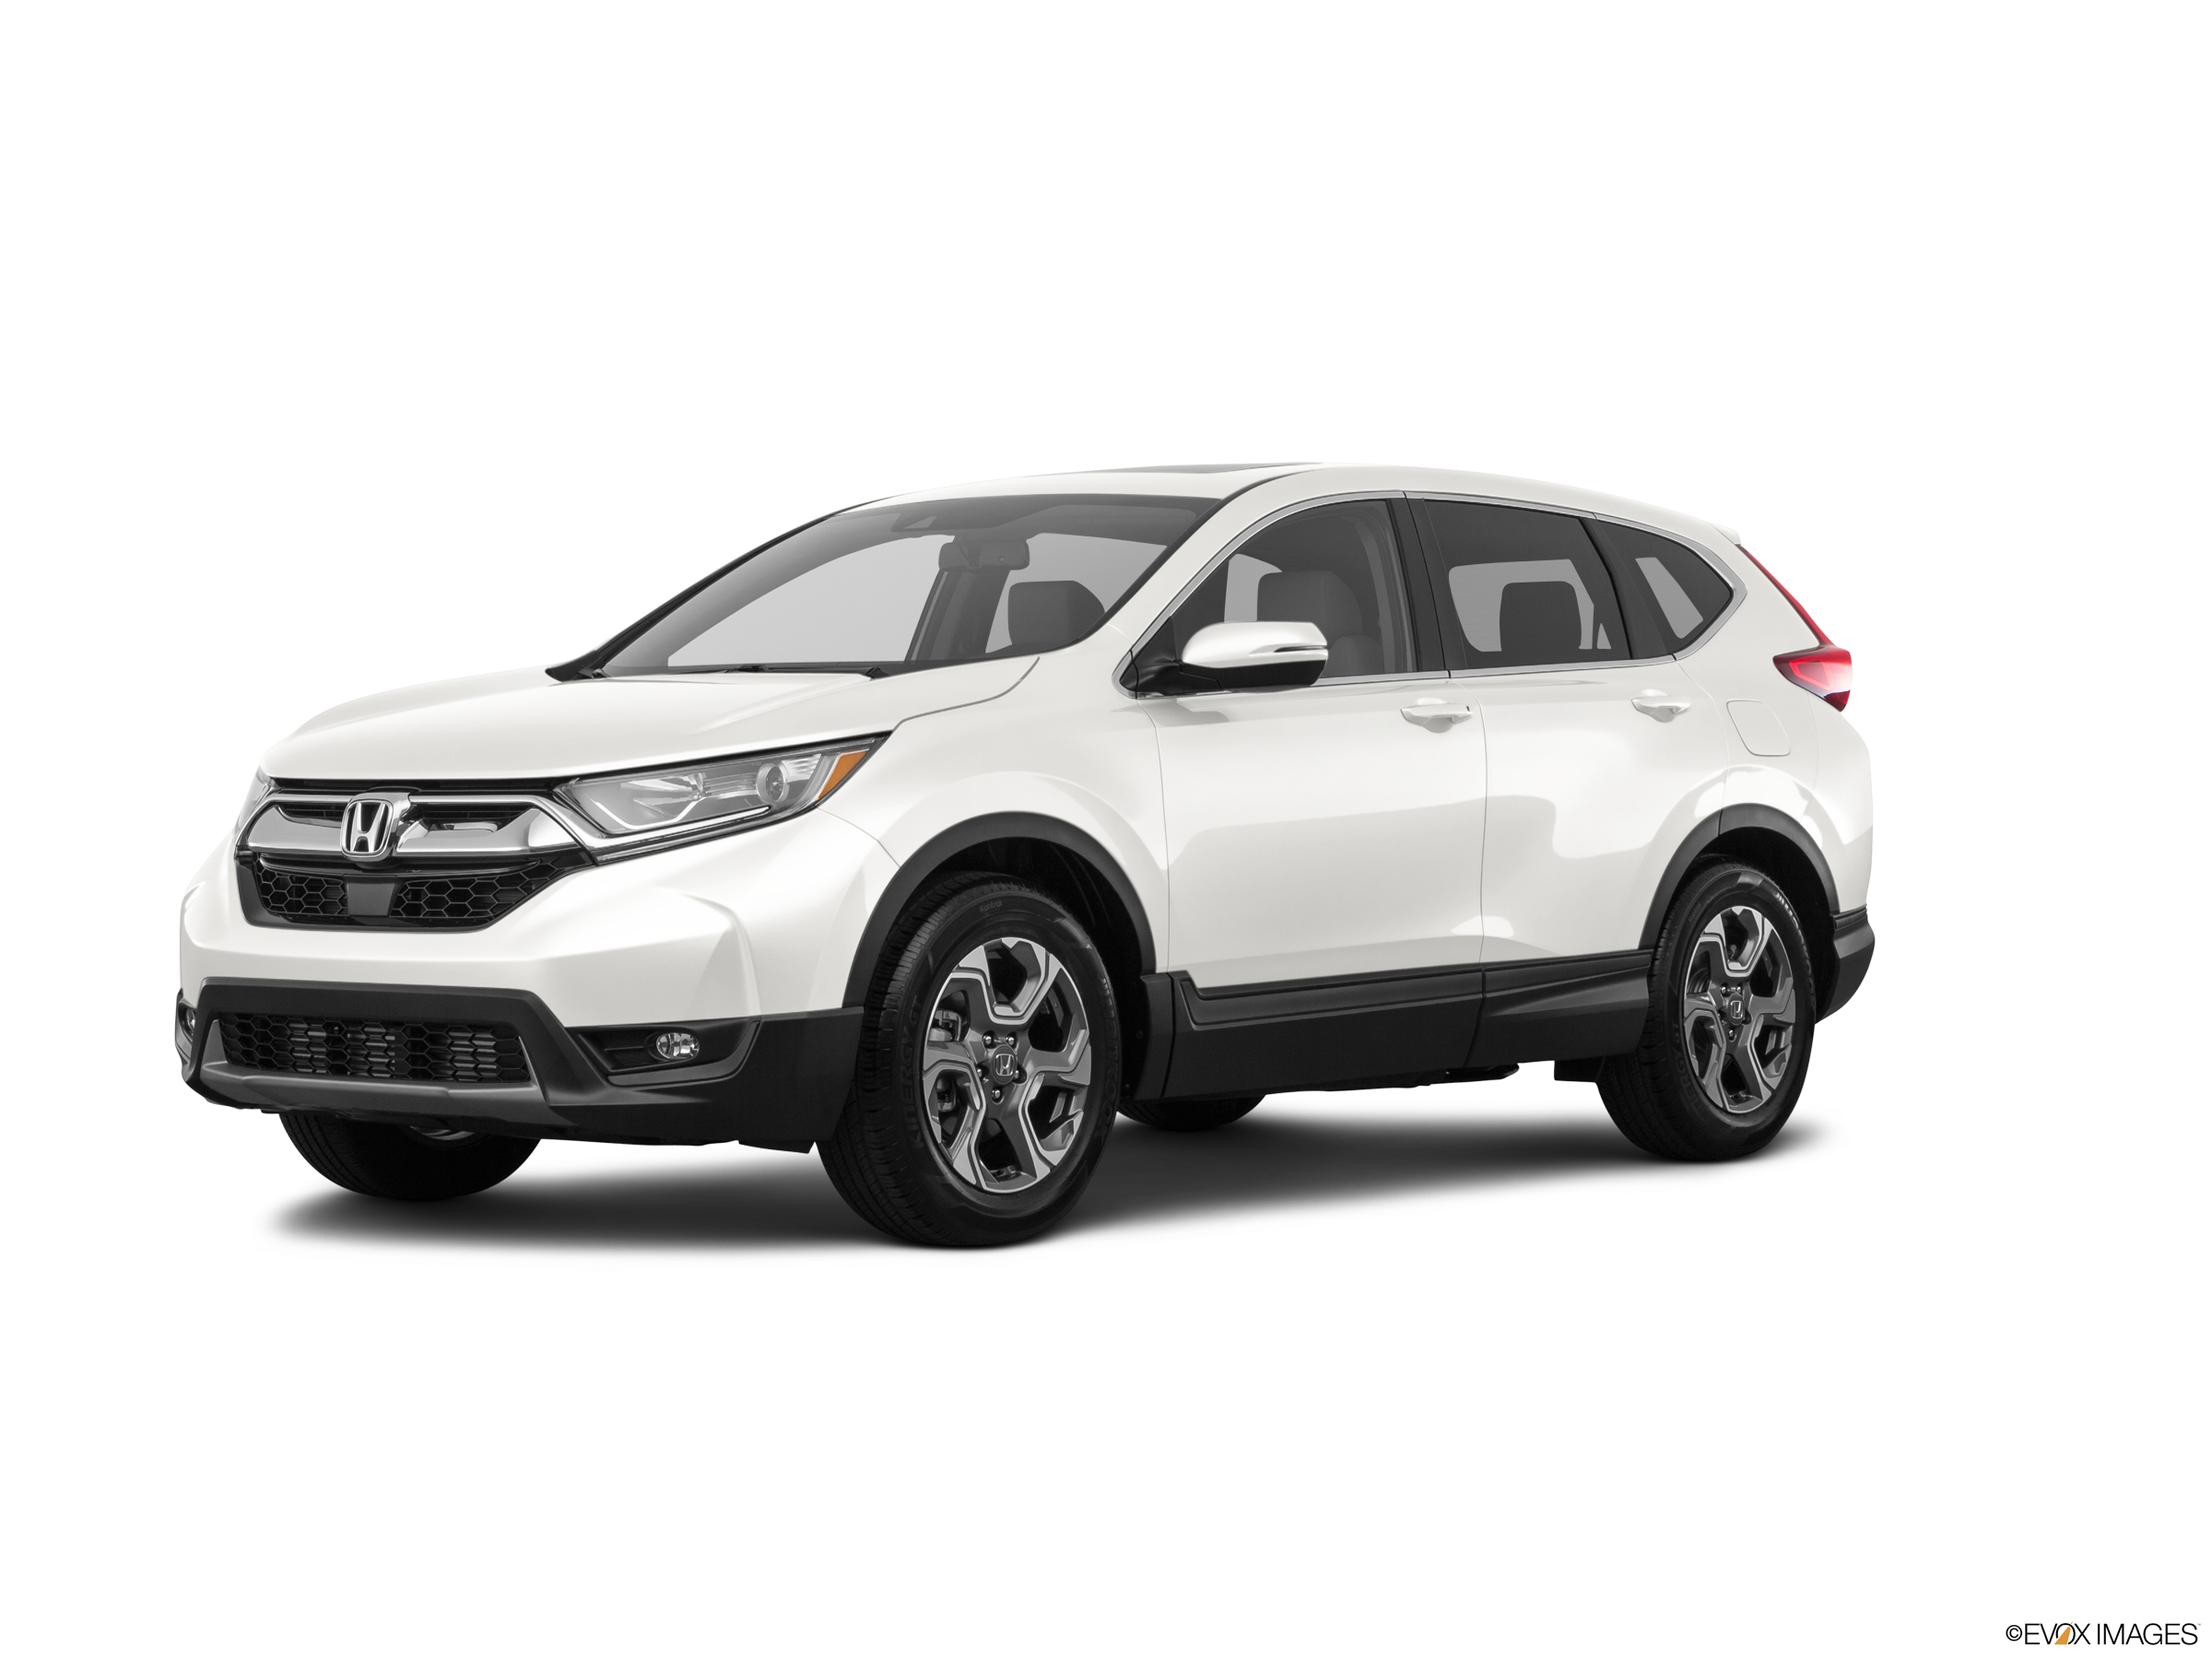 Top Expert Rated SUVS of 2017 - 2017 Honda CR-V